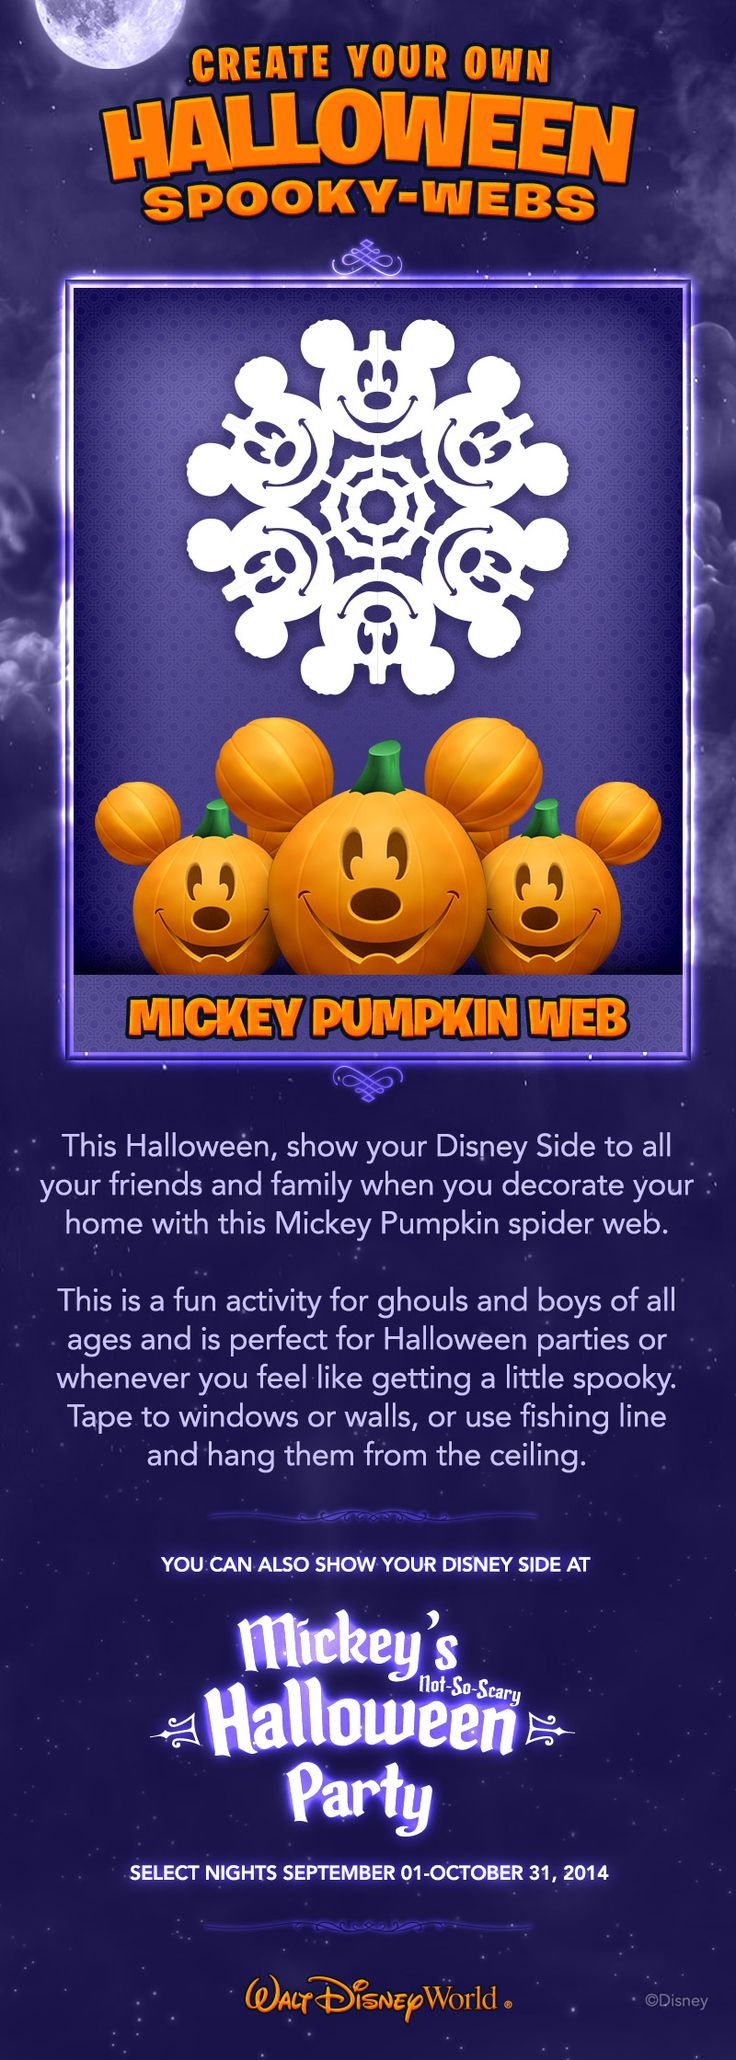 Create your own Halloween Spooky-Webs! #NotSoScary #waltdisneyworld